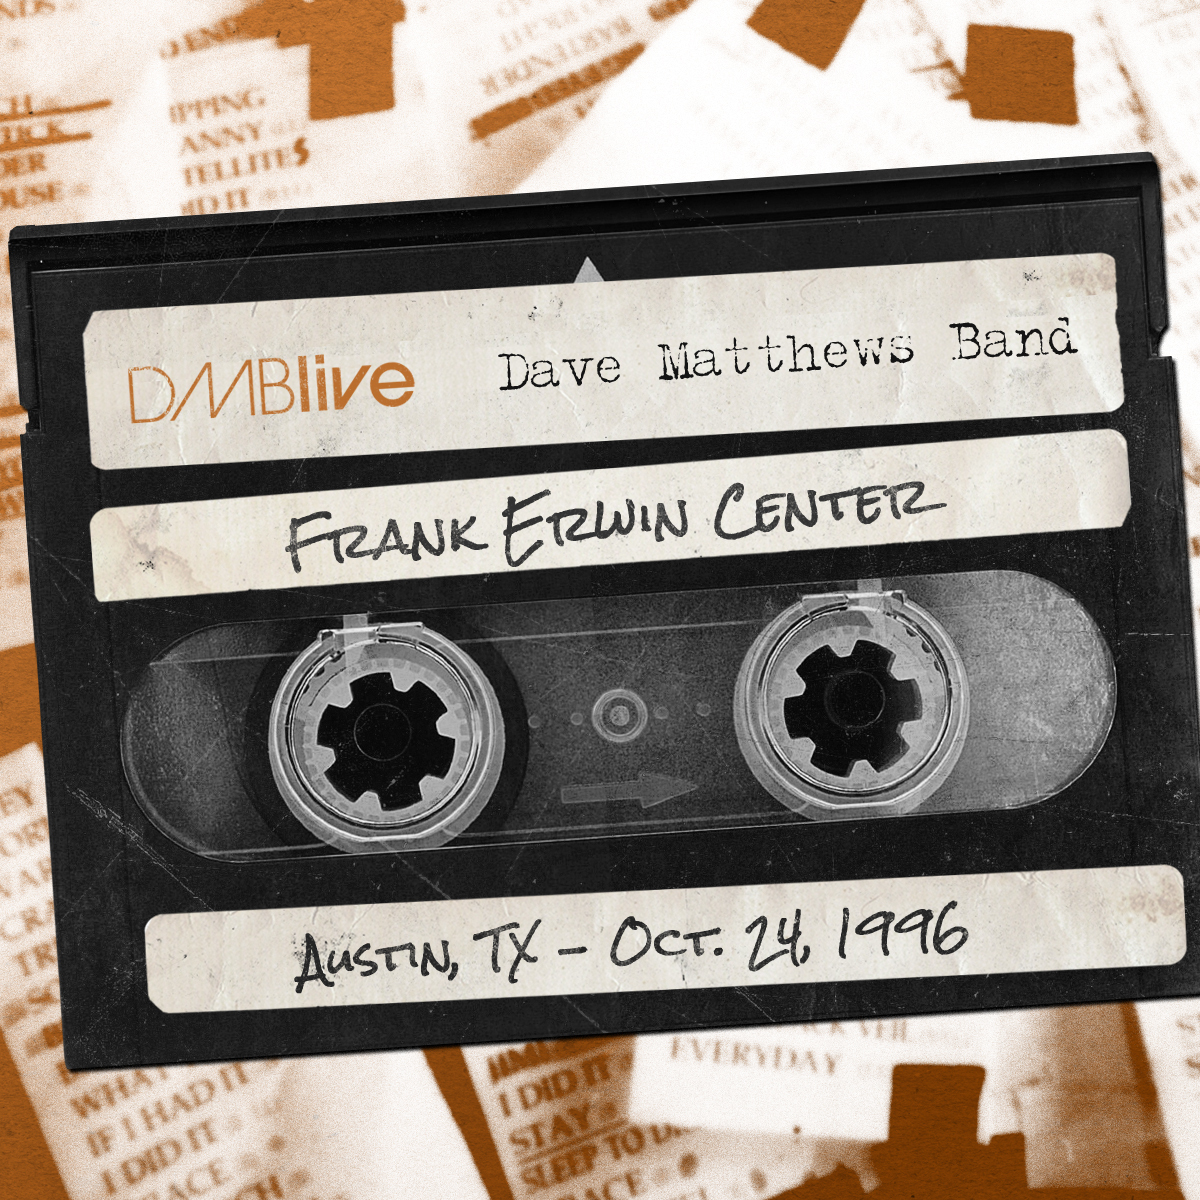 DMB Frank Erwin Center, Austin, TX 10/24/1996